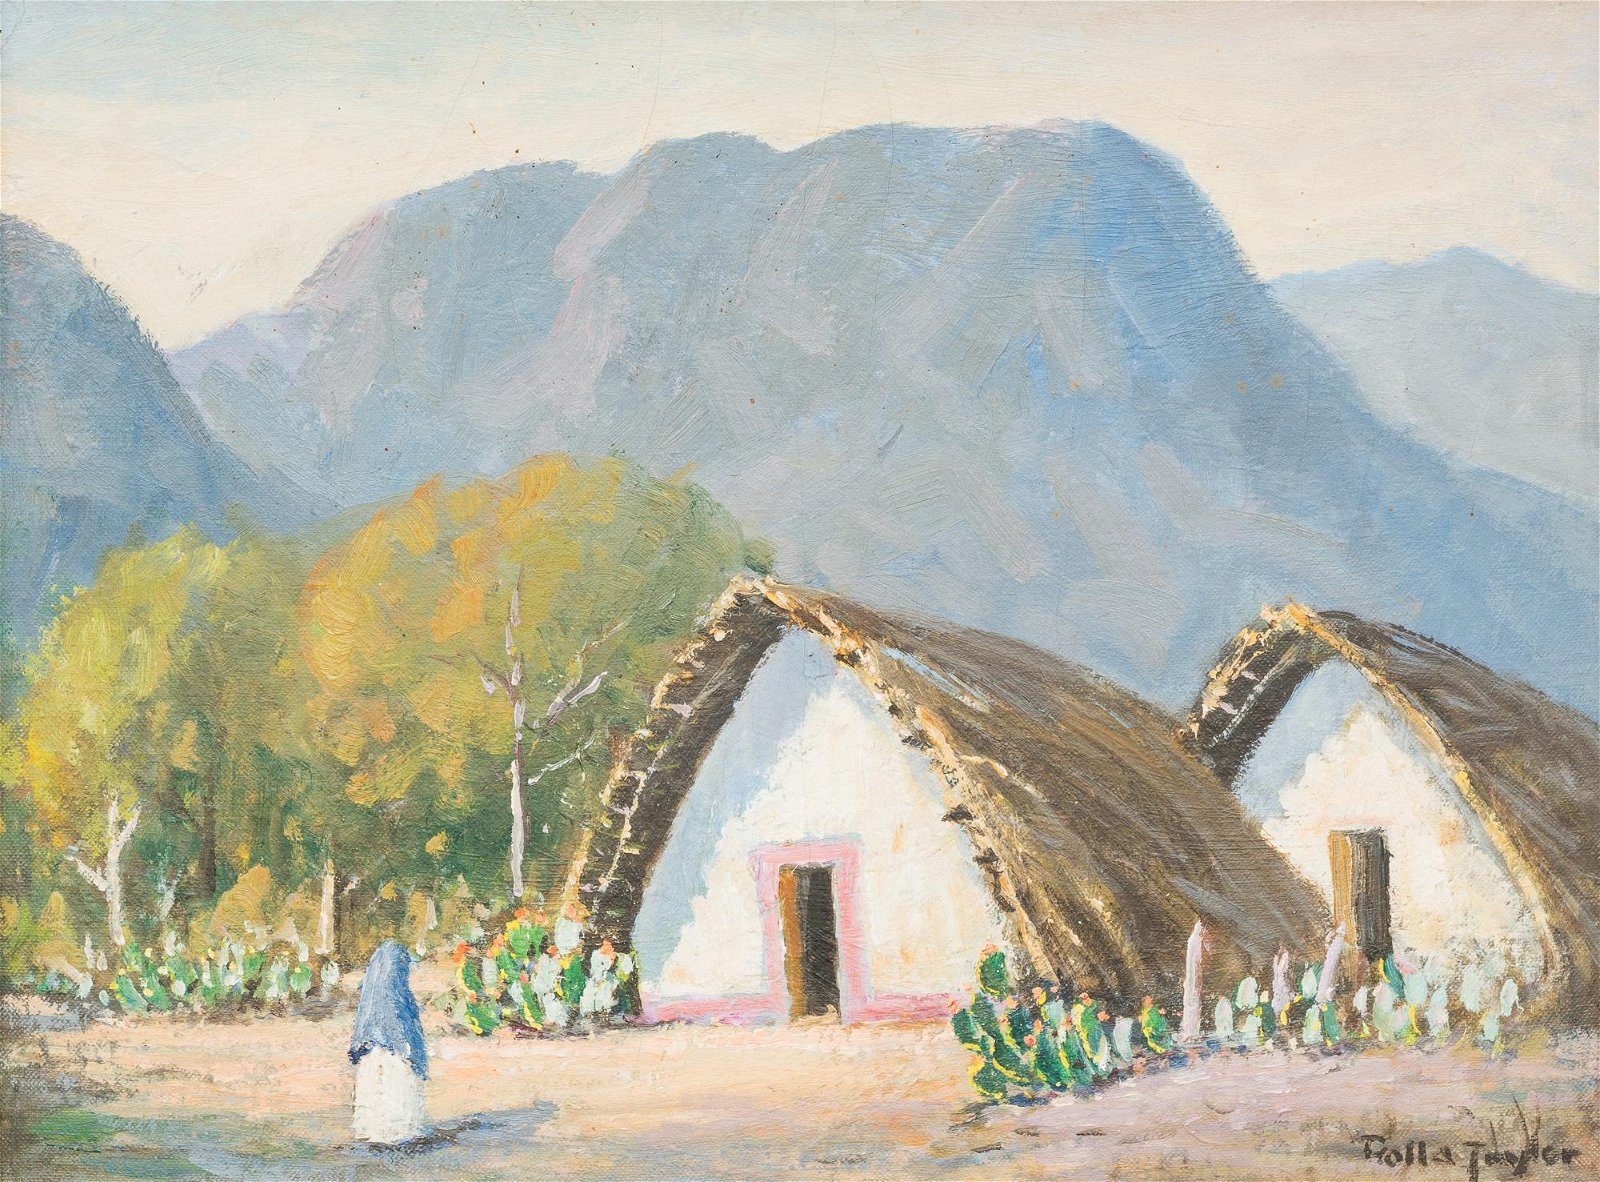 Rolla Taylor (1872-1970), Mexican Village, oil